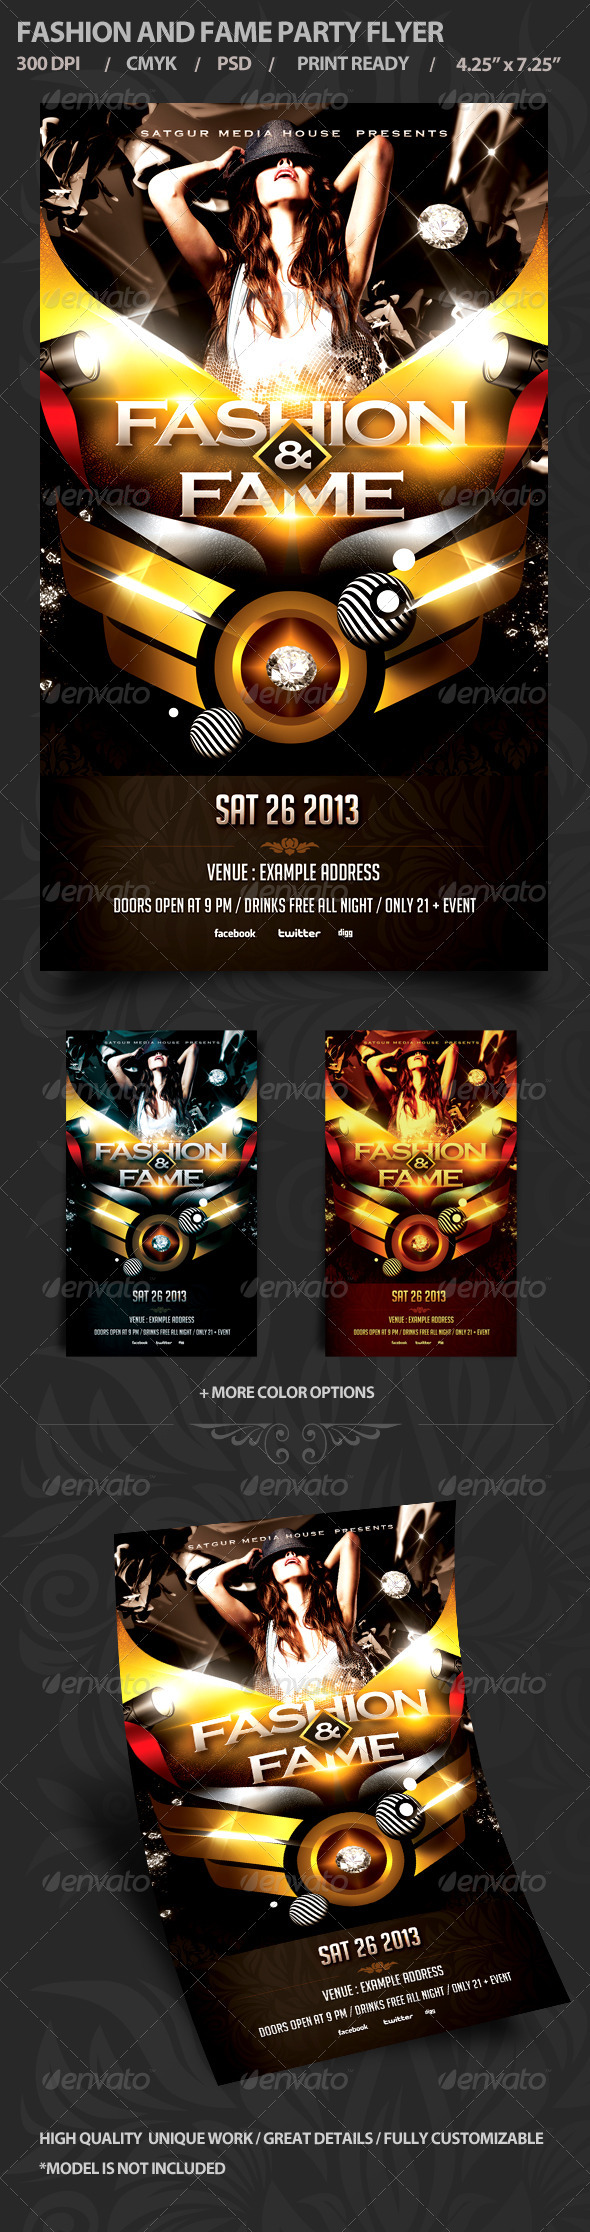 GraphicRiver Fashion and Fame Party Flyer 4012601